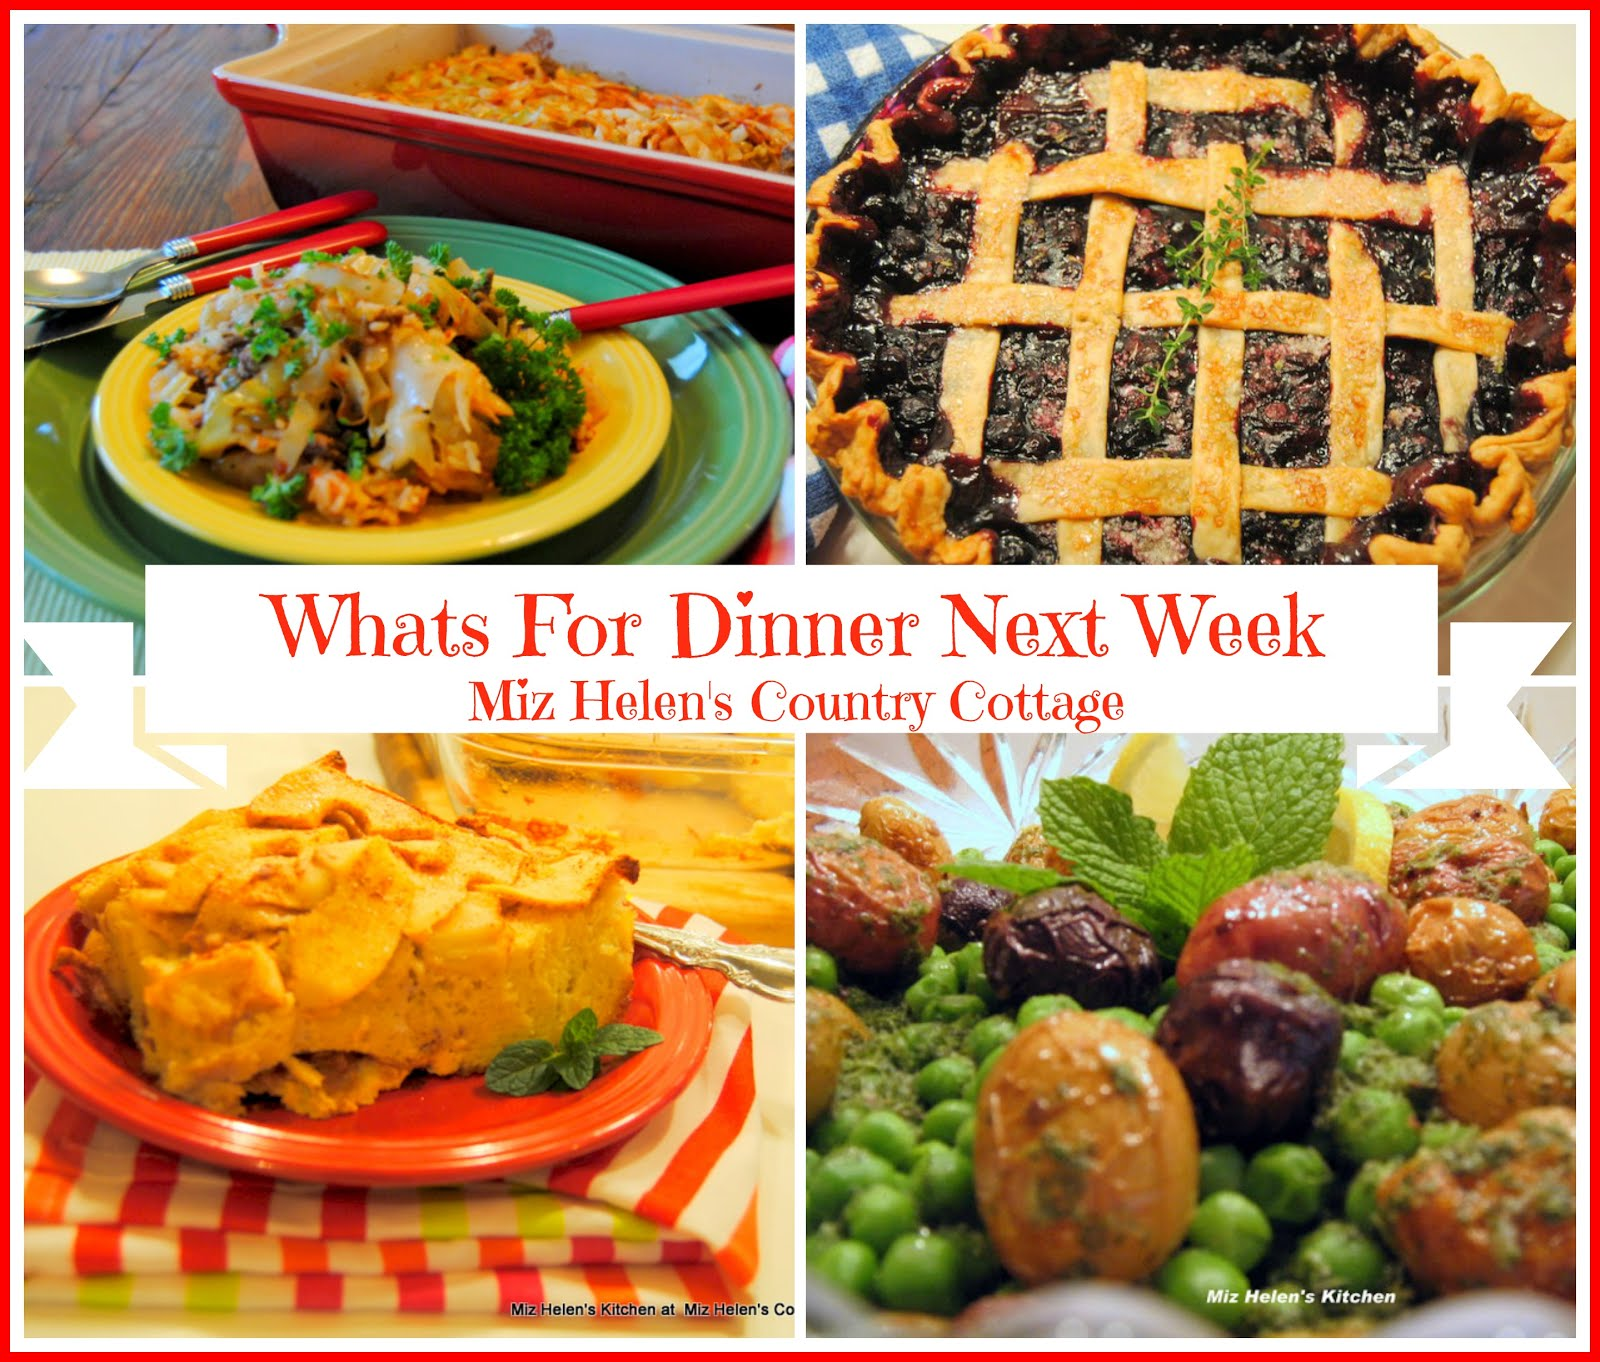 Whats For Dinner Next Week * Week of 3-07-21